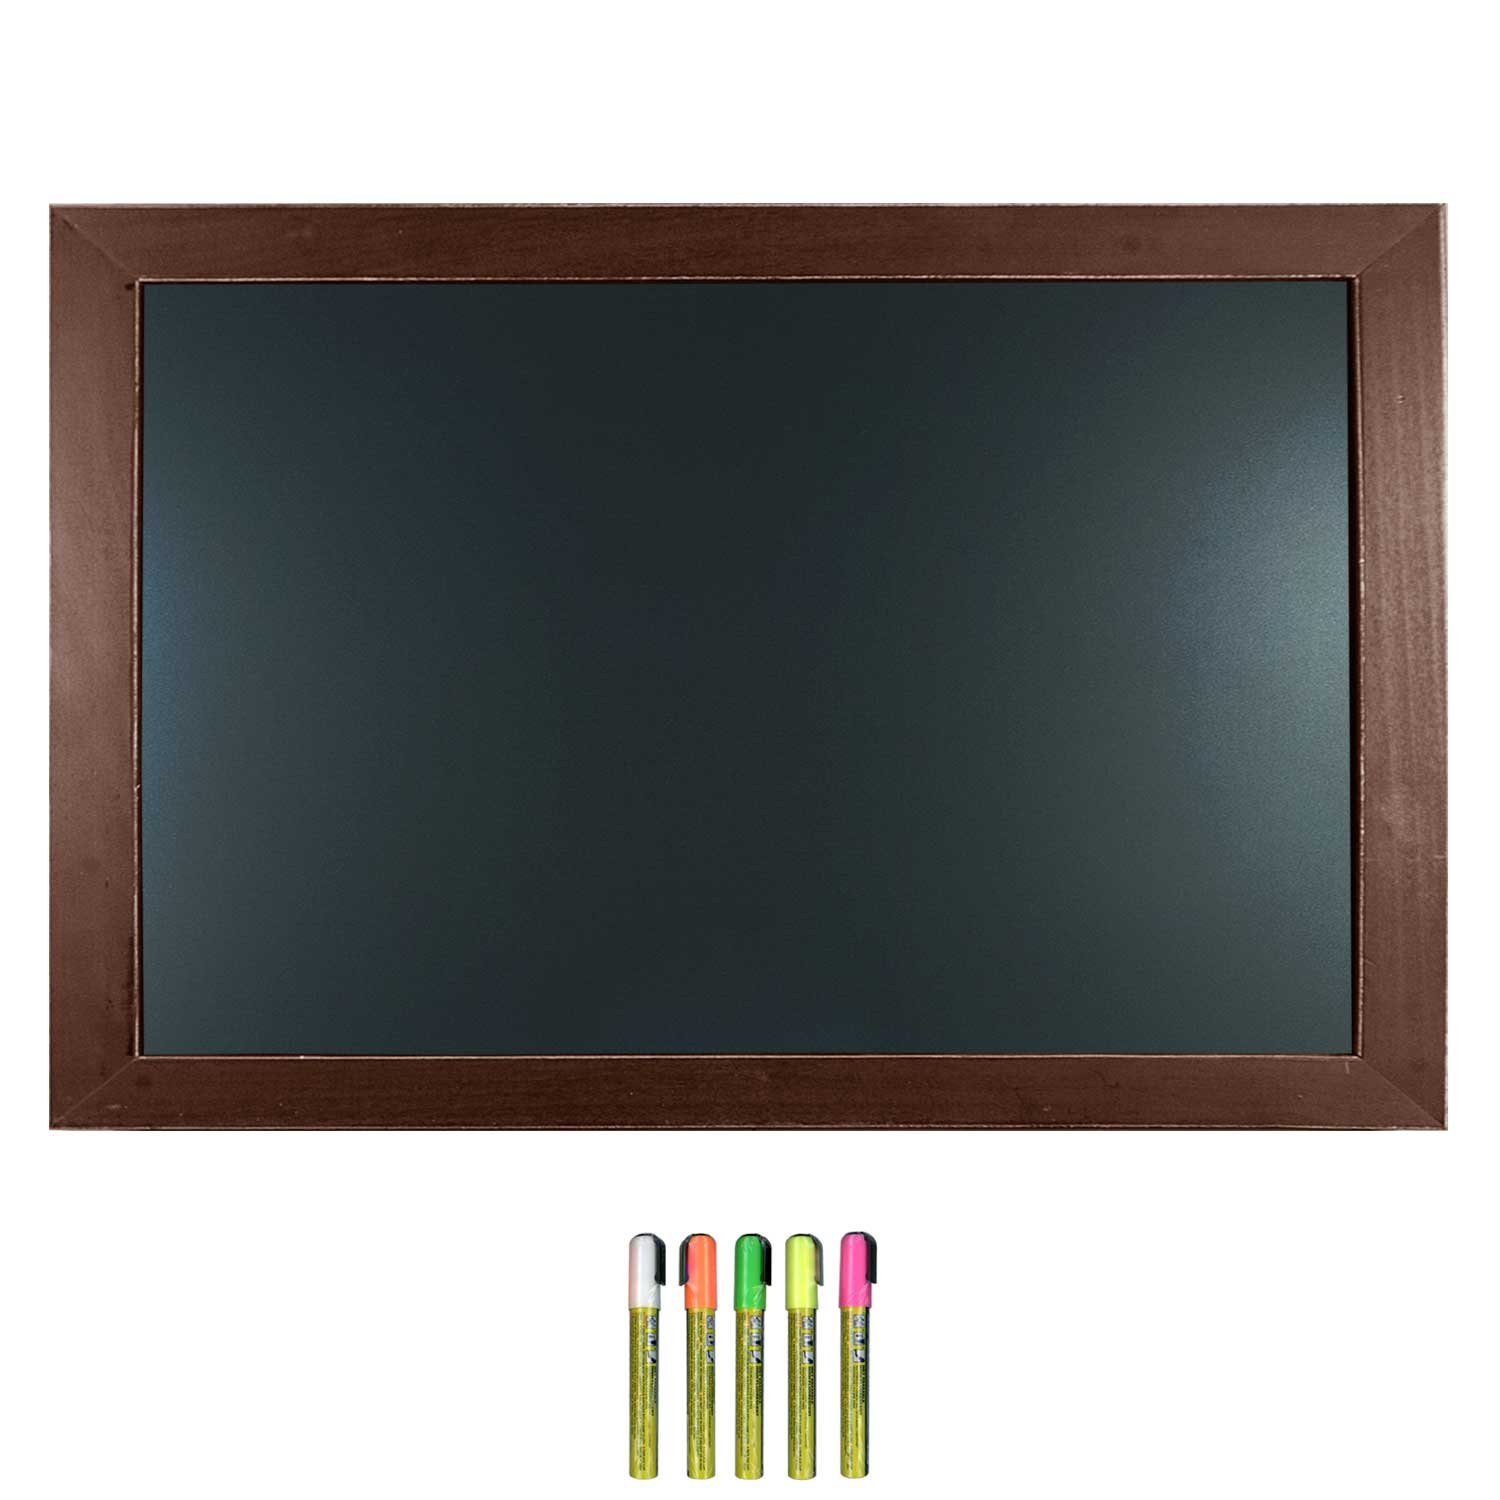 Cohas Framed Chalkboard includes Blackboard in Country Craft Frame and Liquid Chalk Marker, 24 x 36 Inches, Cherry Stained Oak Craft Frame